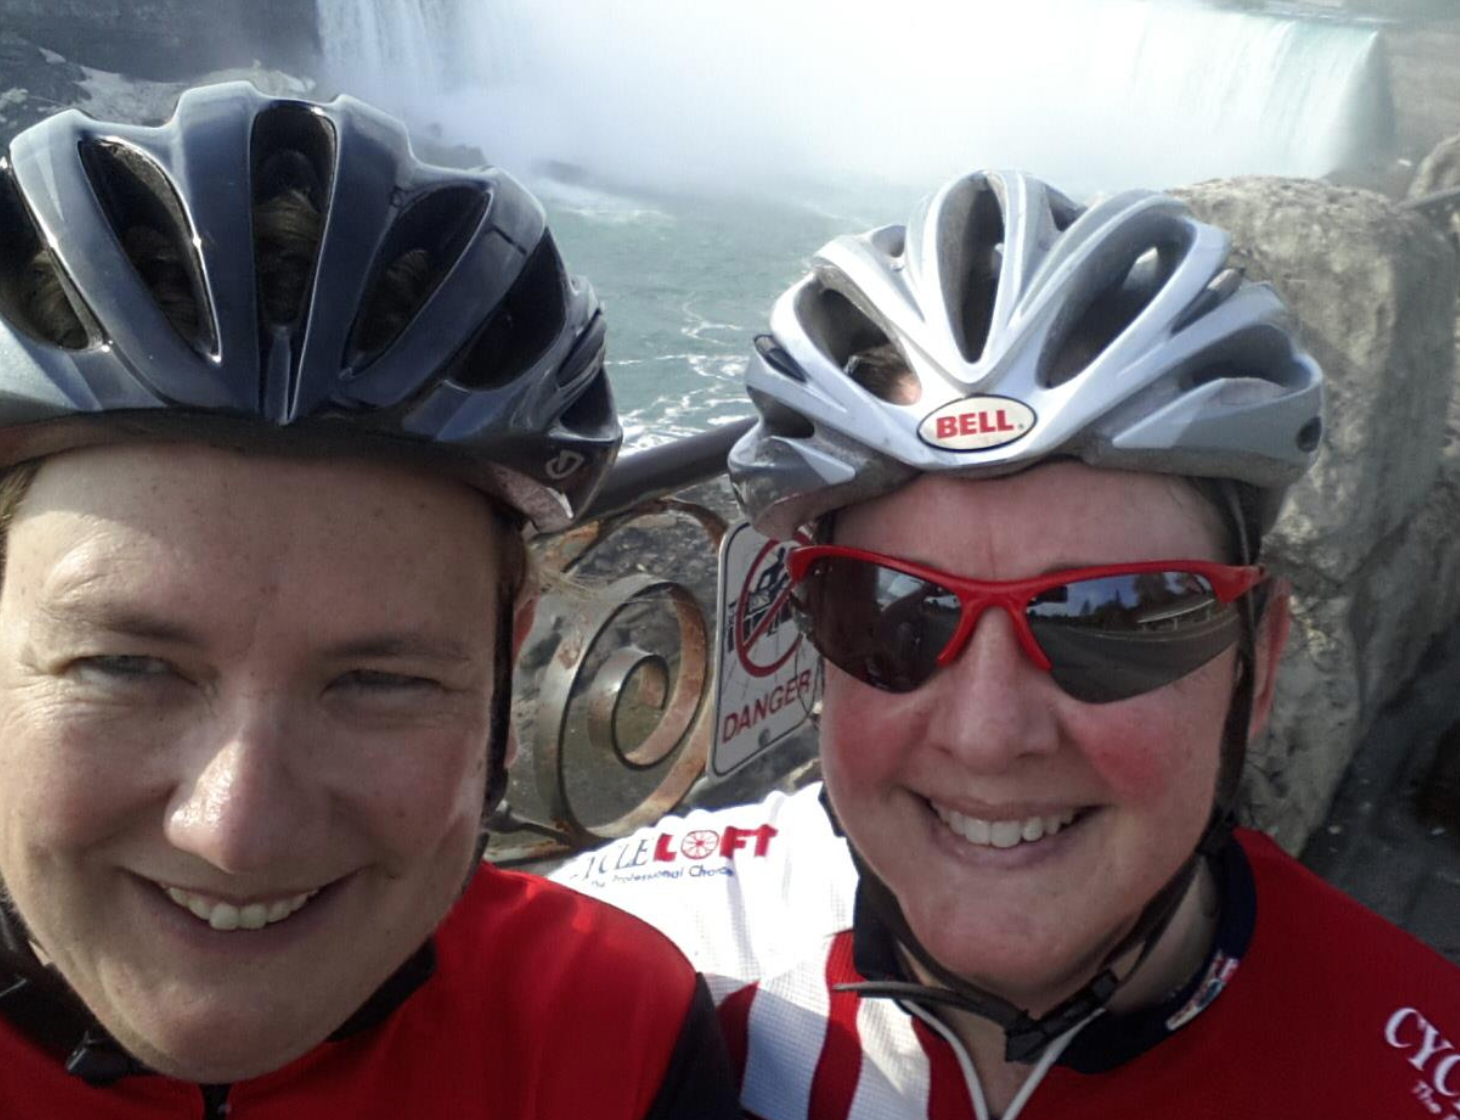 Samantha and me, biking to and from Niagara Falls, 2014.